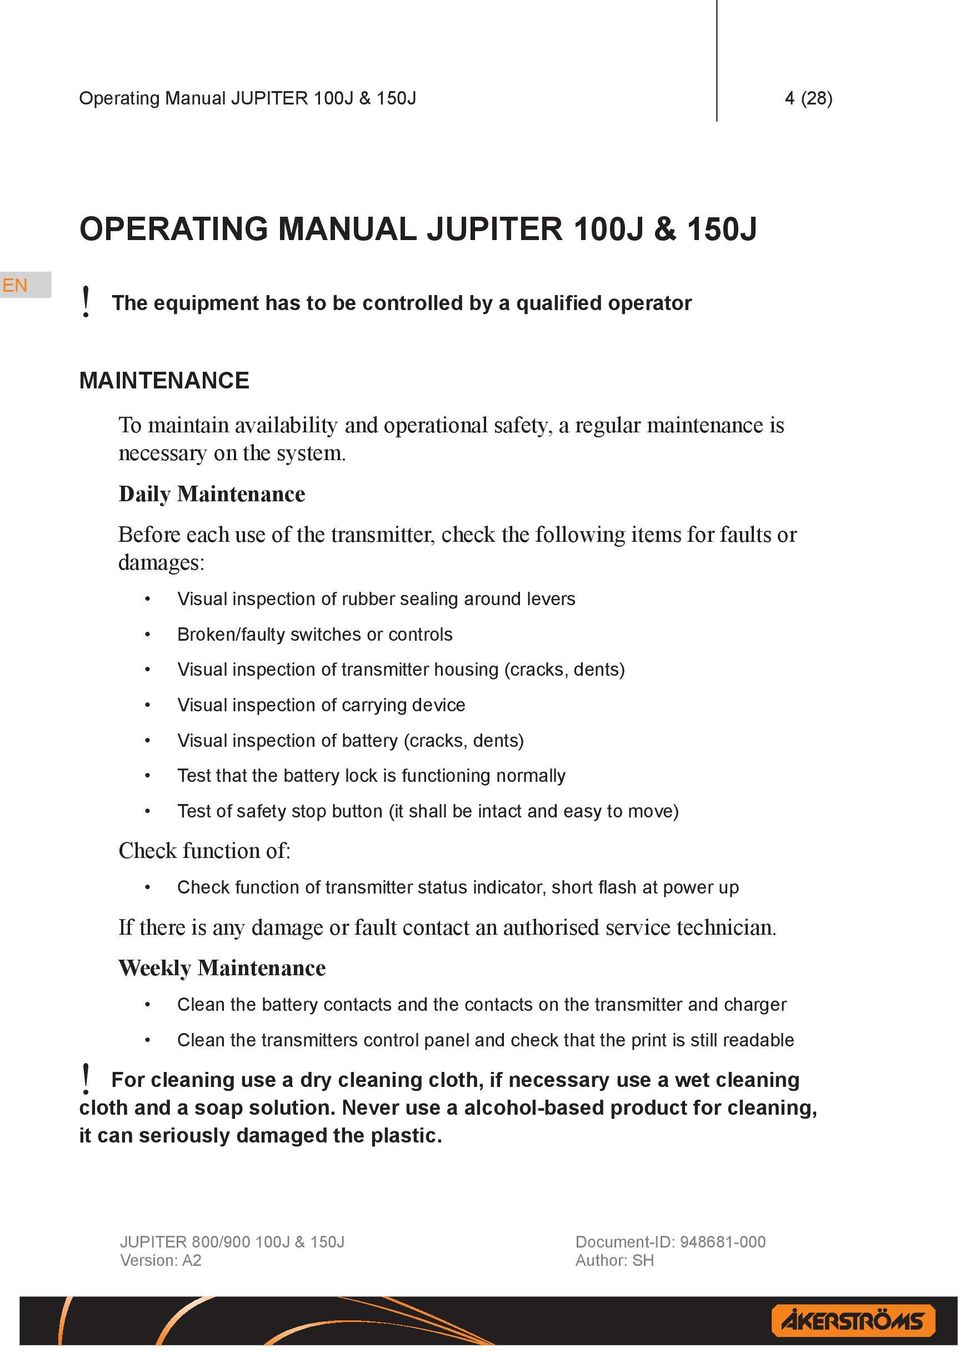 Daily Maintenance Before each use of the transmitter, check the following items for faults or damages: Visual inspection of rubber sealing around levers Broken/faulty switches or controls Visual